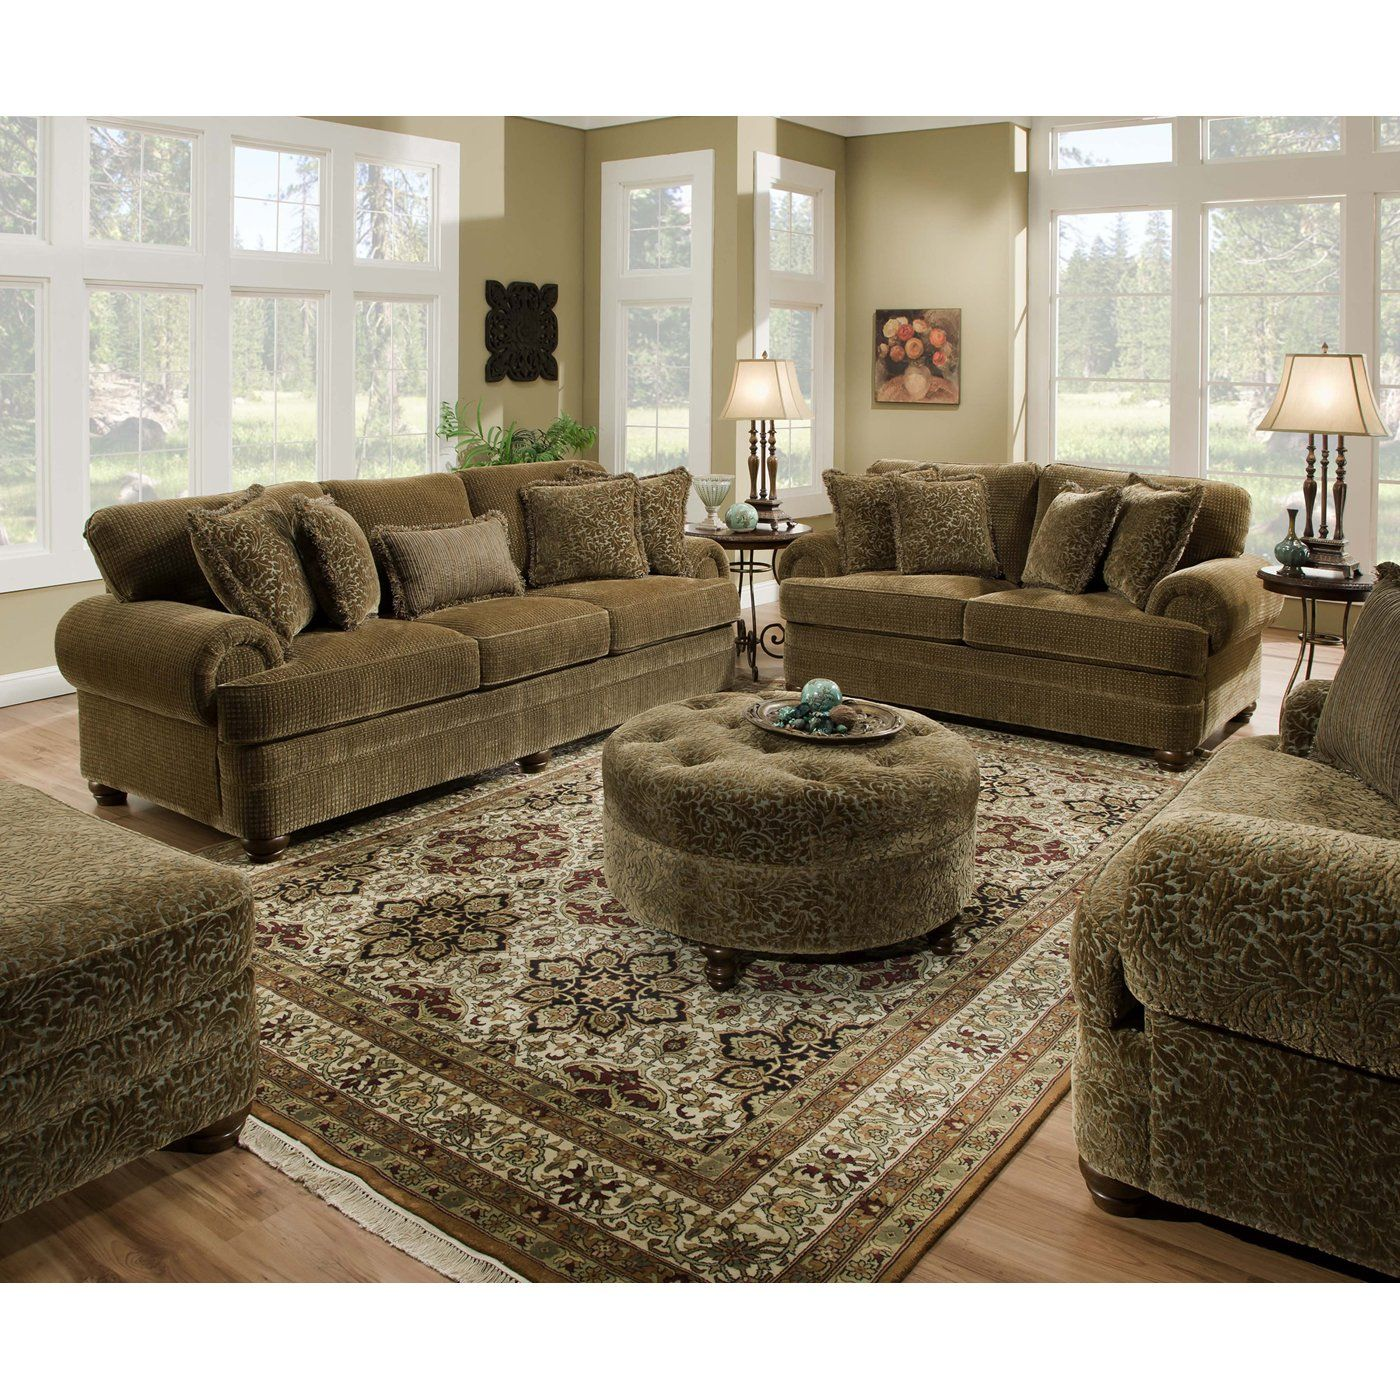 High Quality Simmons Upholstery 90100 Simmons Beautyrest Sofa Set